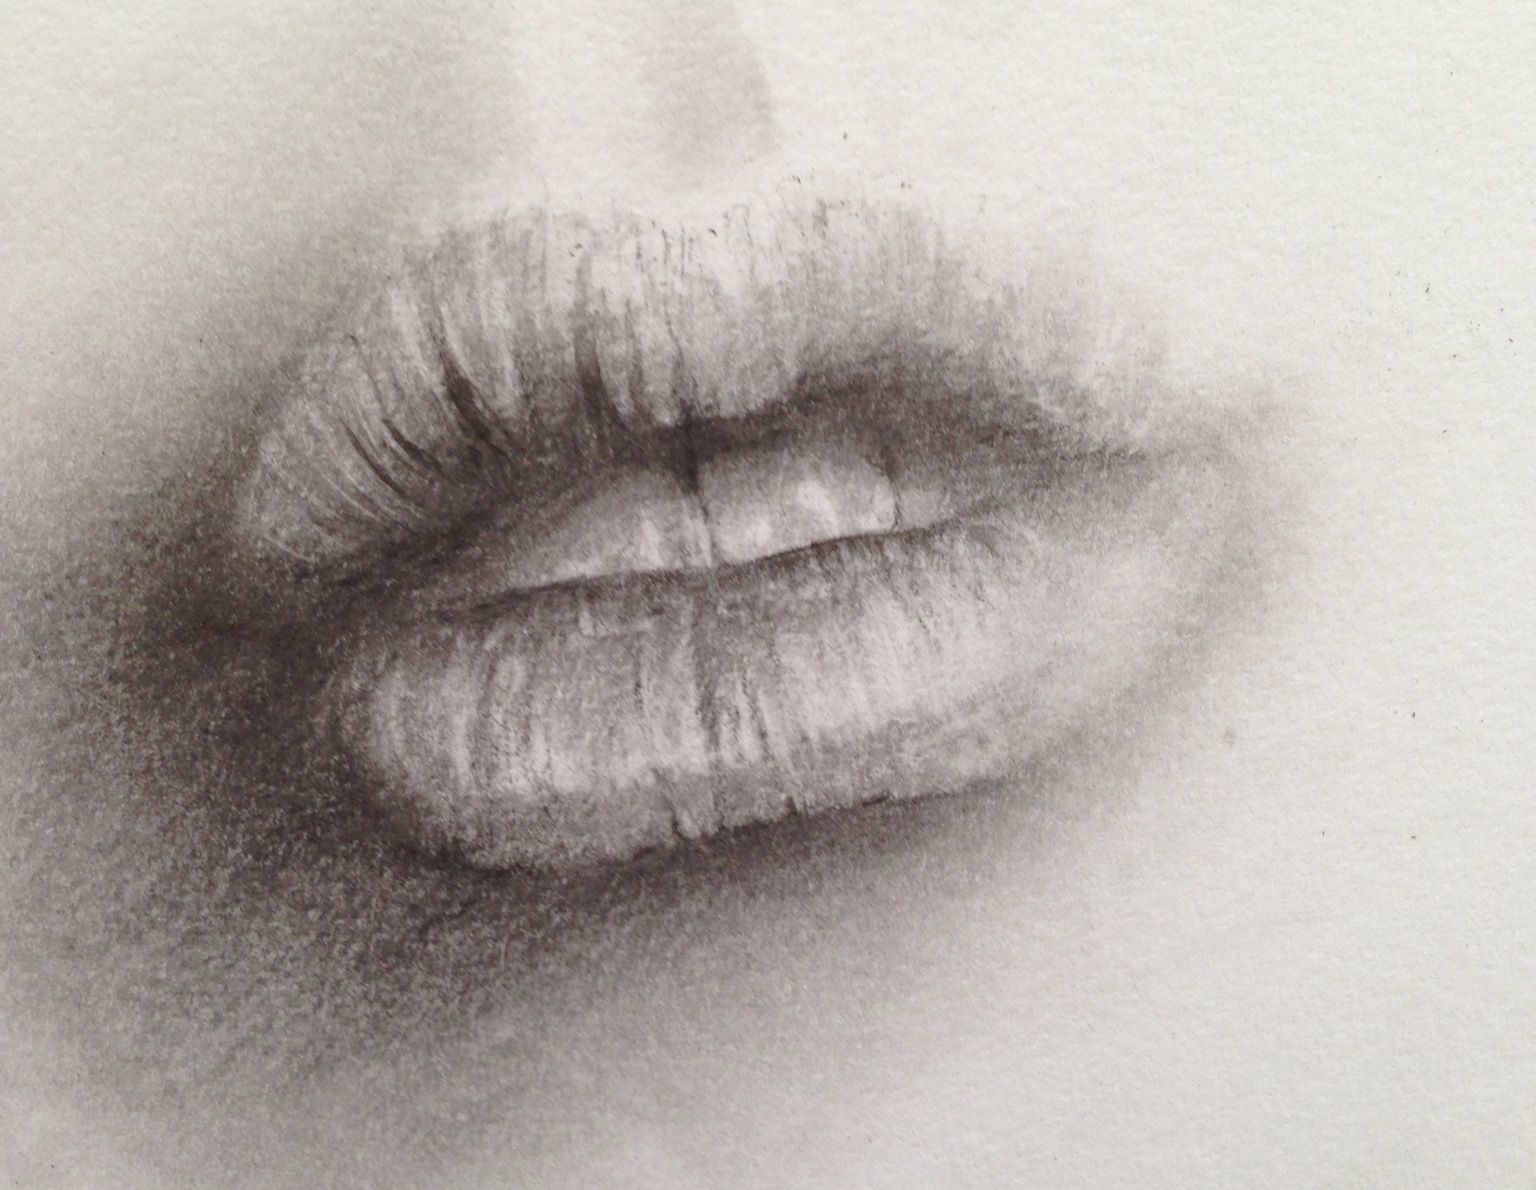 Mouth study photorealism pencil sketch work in progress drawing photorealism pencil sketch work in progress drawing of lips and teeth by aixa ccuart Image collections